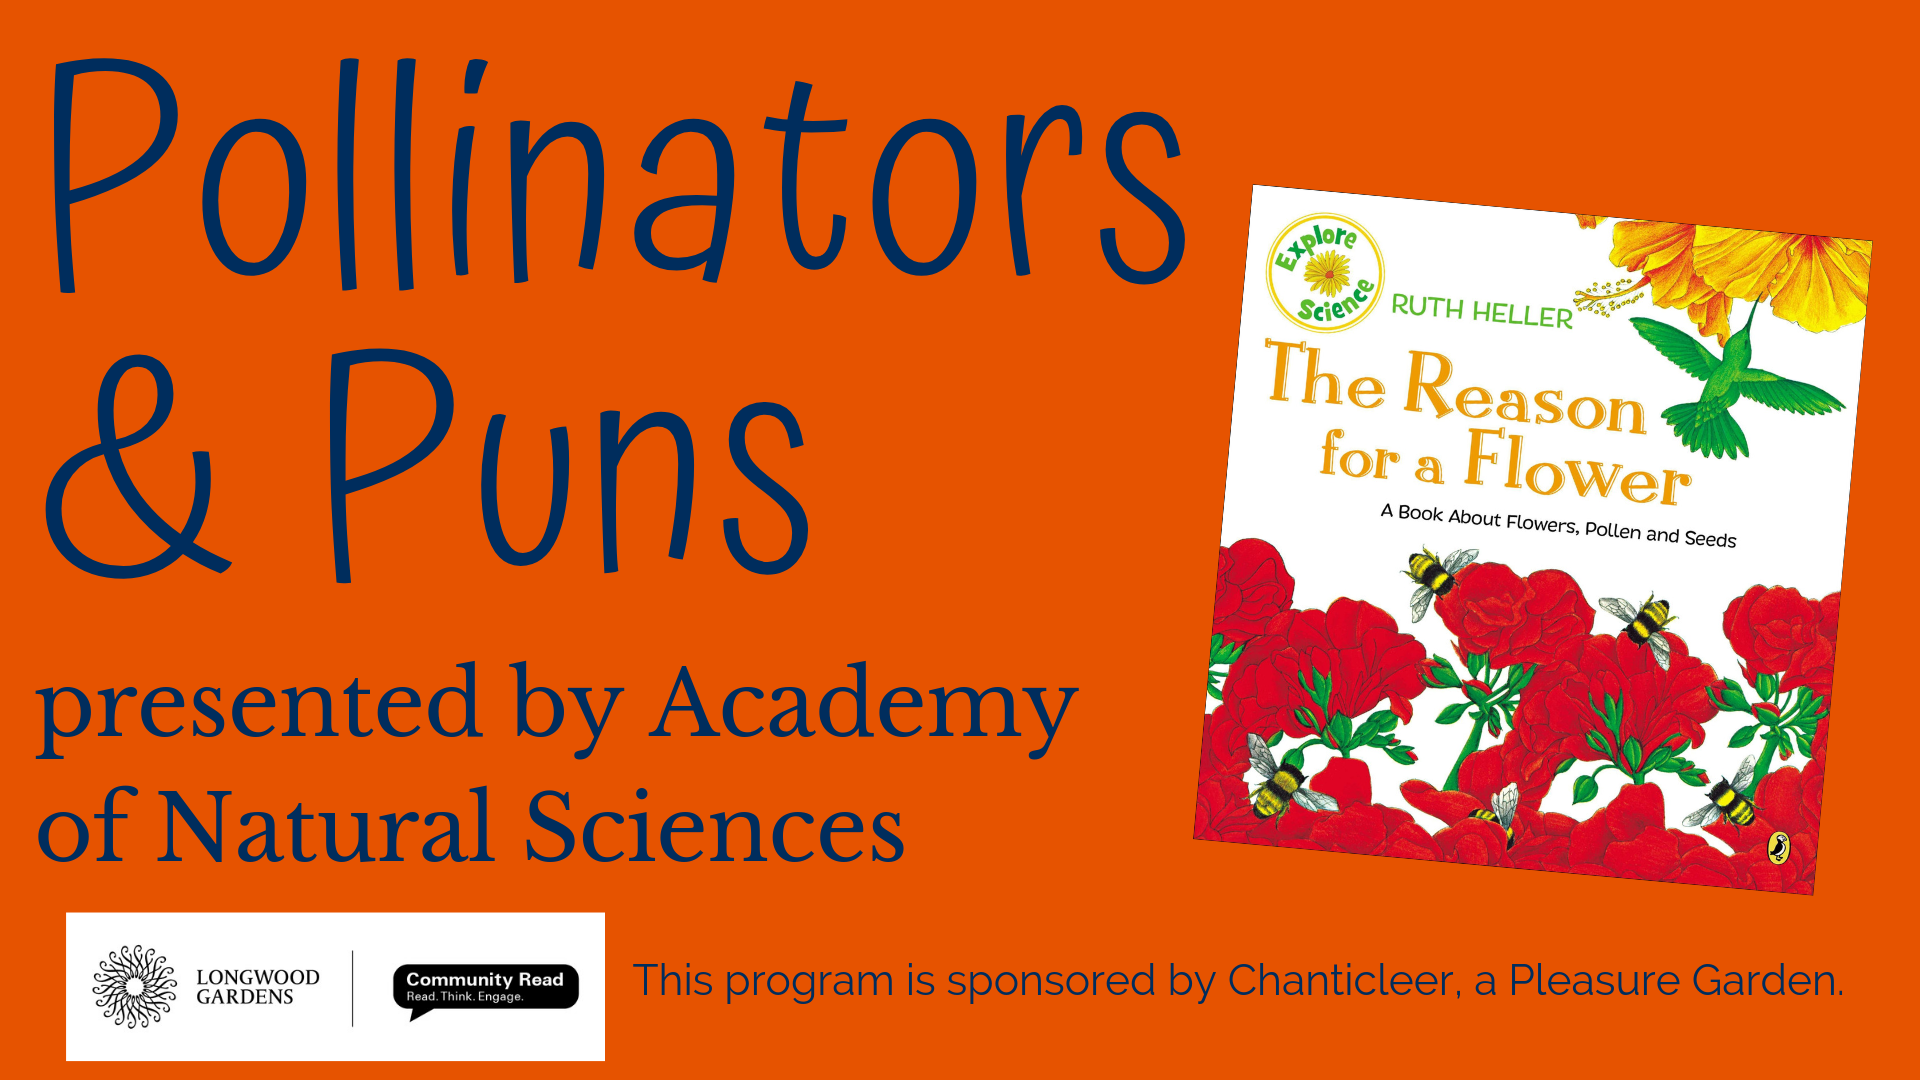 Pollinators & Puns presented by Academy of Natural Sciences